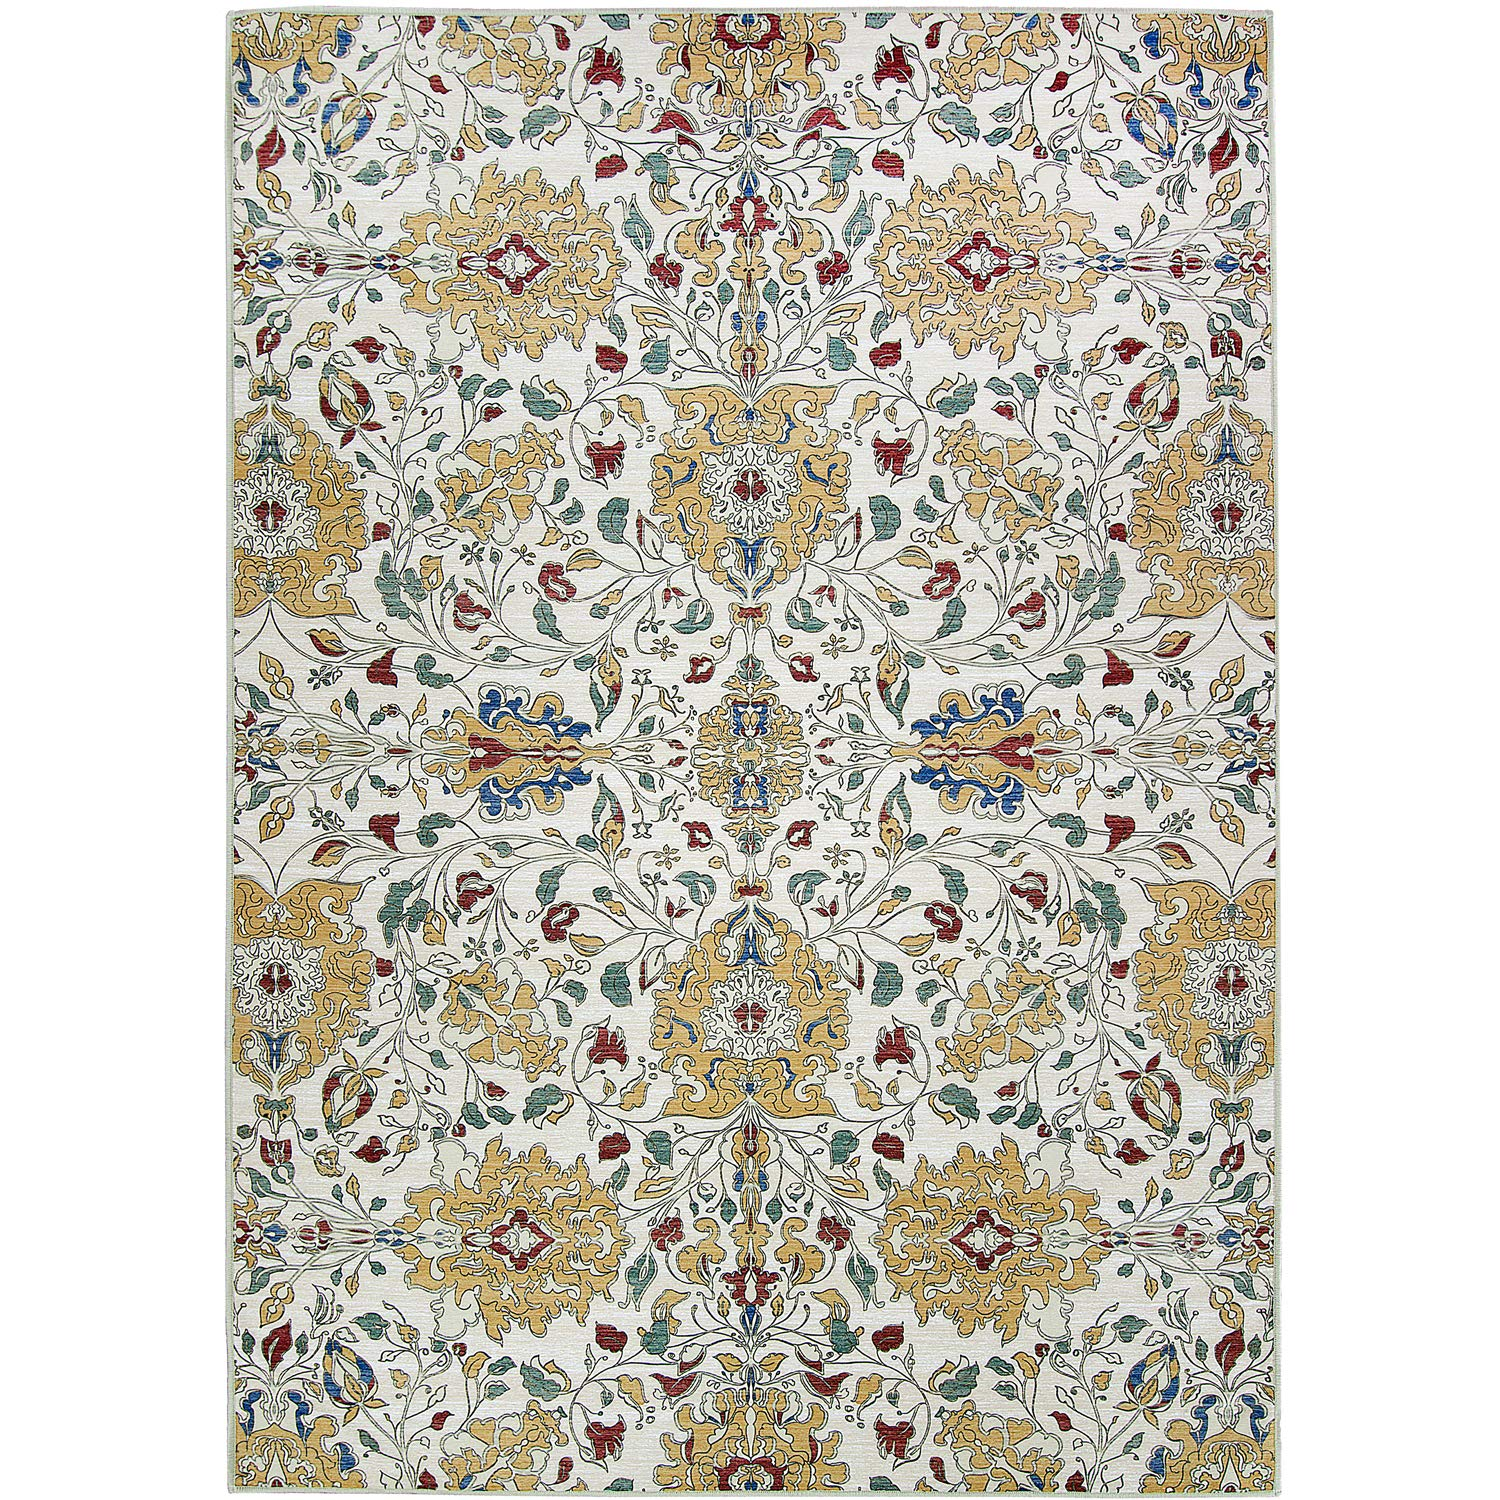 RUGGABLE Washable Indoor/Outdoor Stain Resistant 8'x10' (94''x120'') Area Rug 2pc Set (Cover and Pad) Traditional Floral Cream